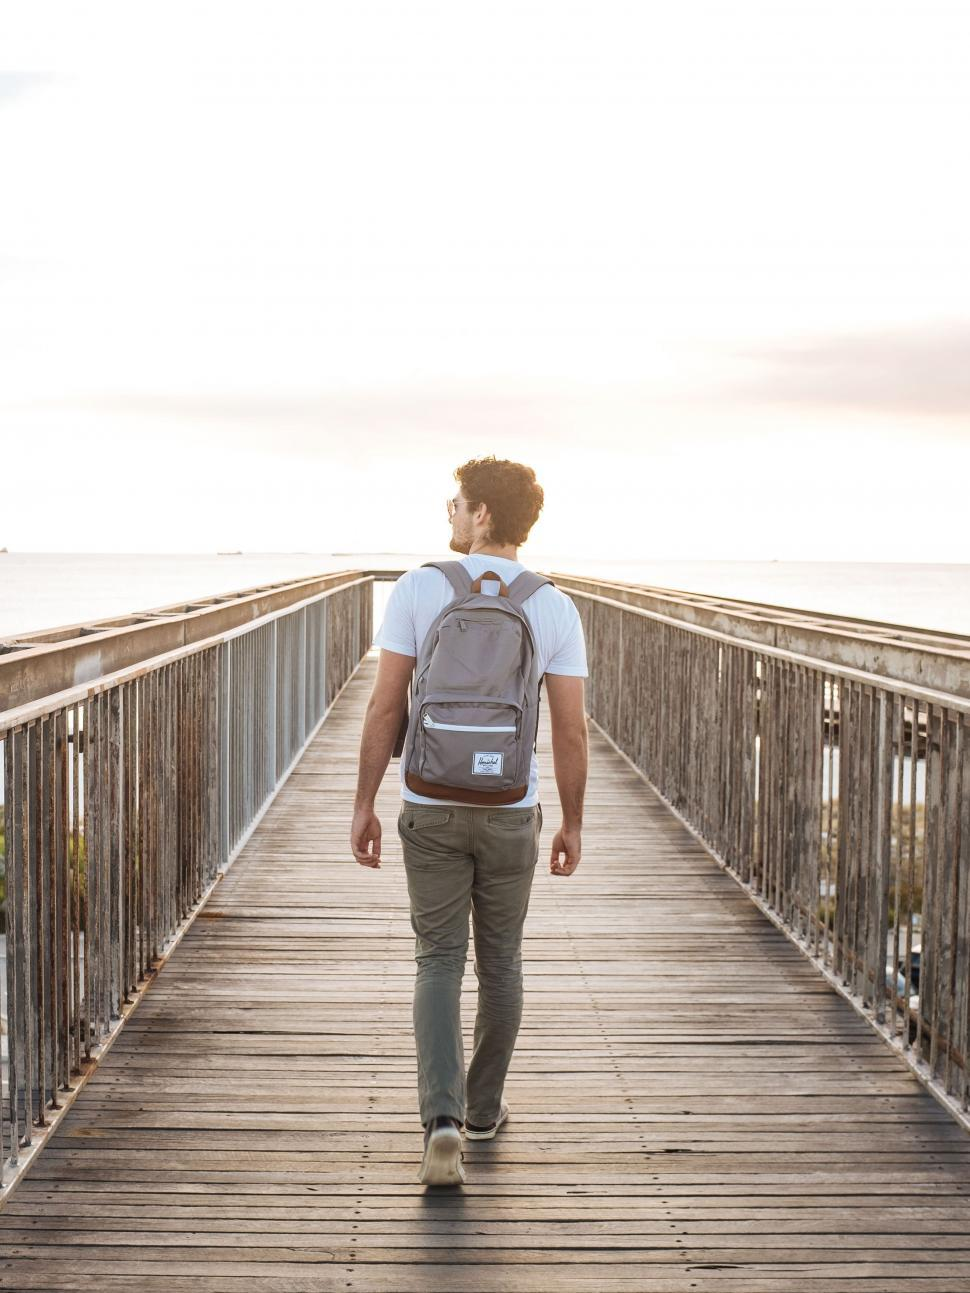 Download Free Stock Photo of Back side view of man walking on pier